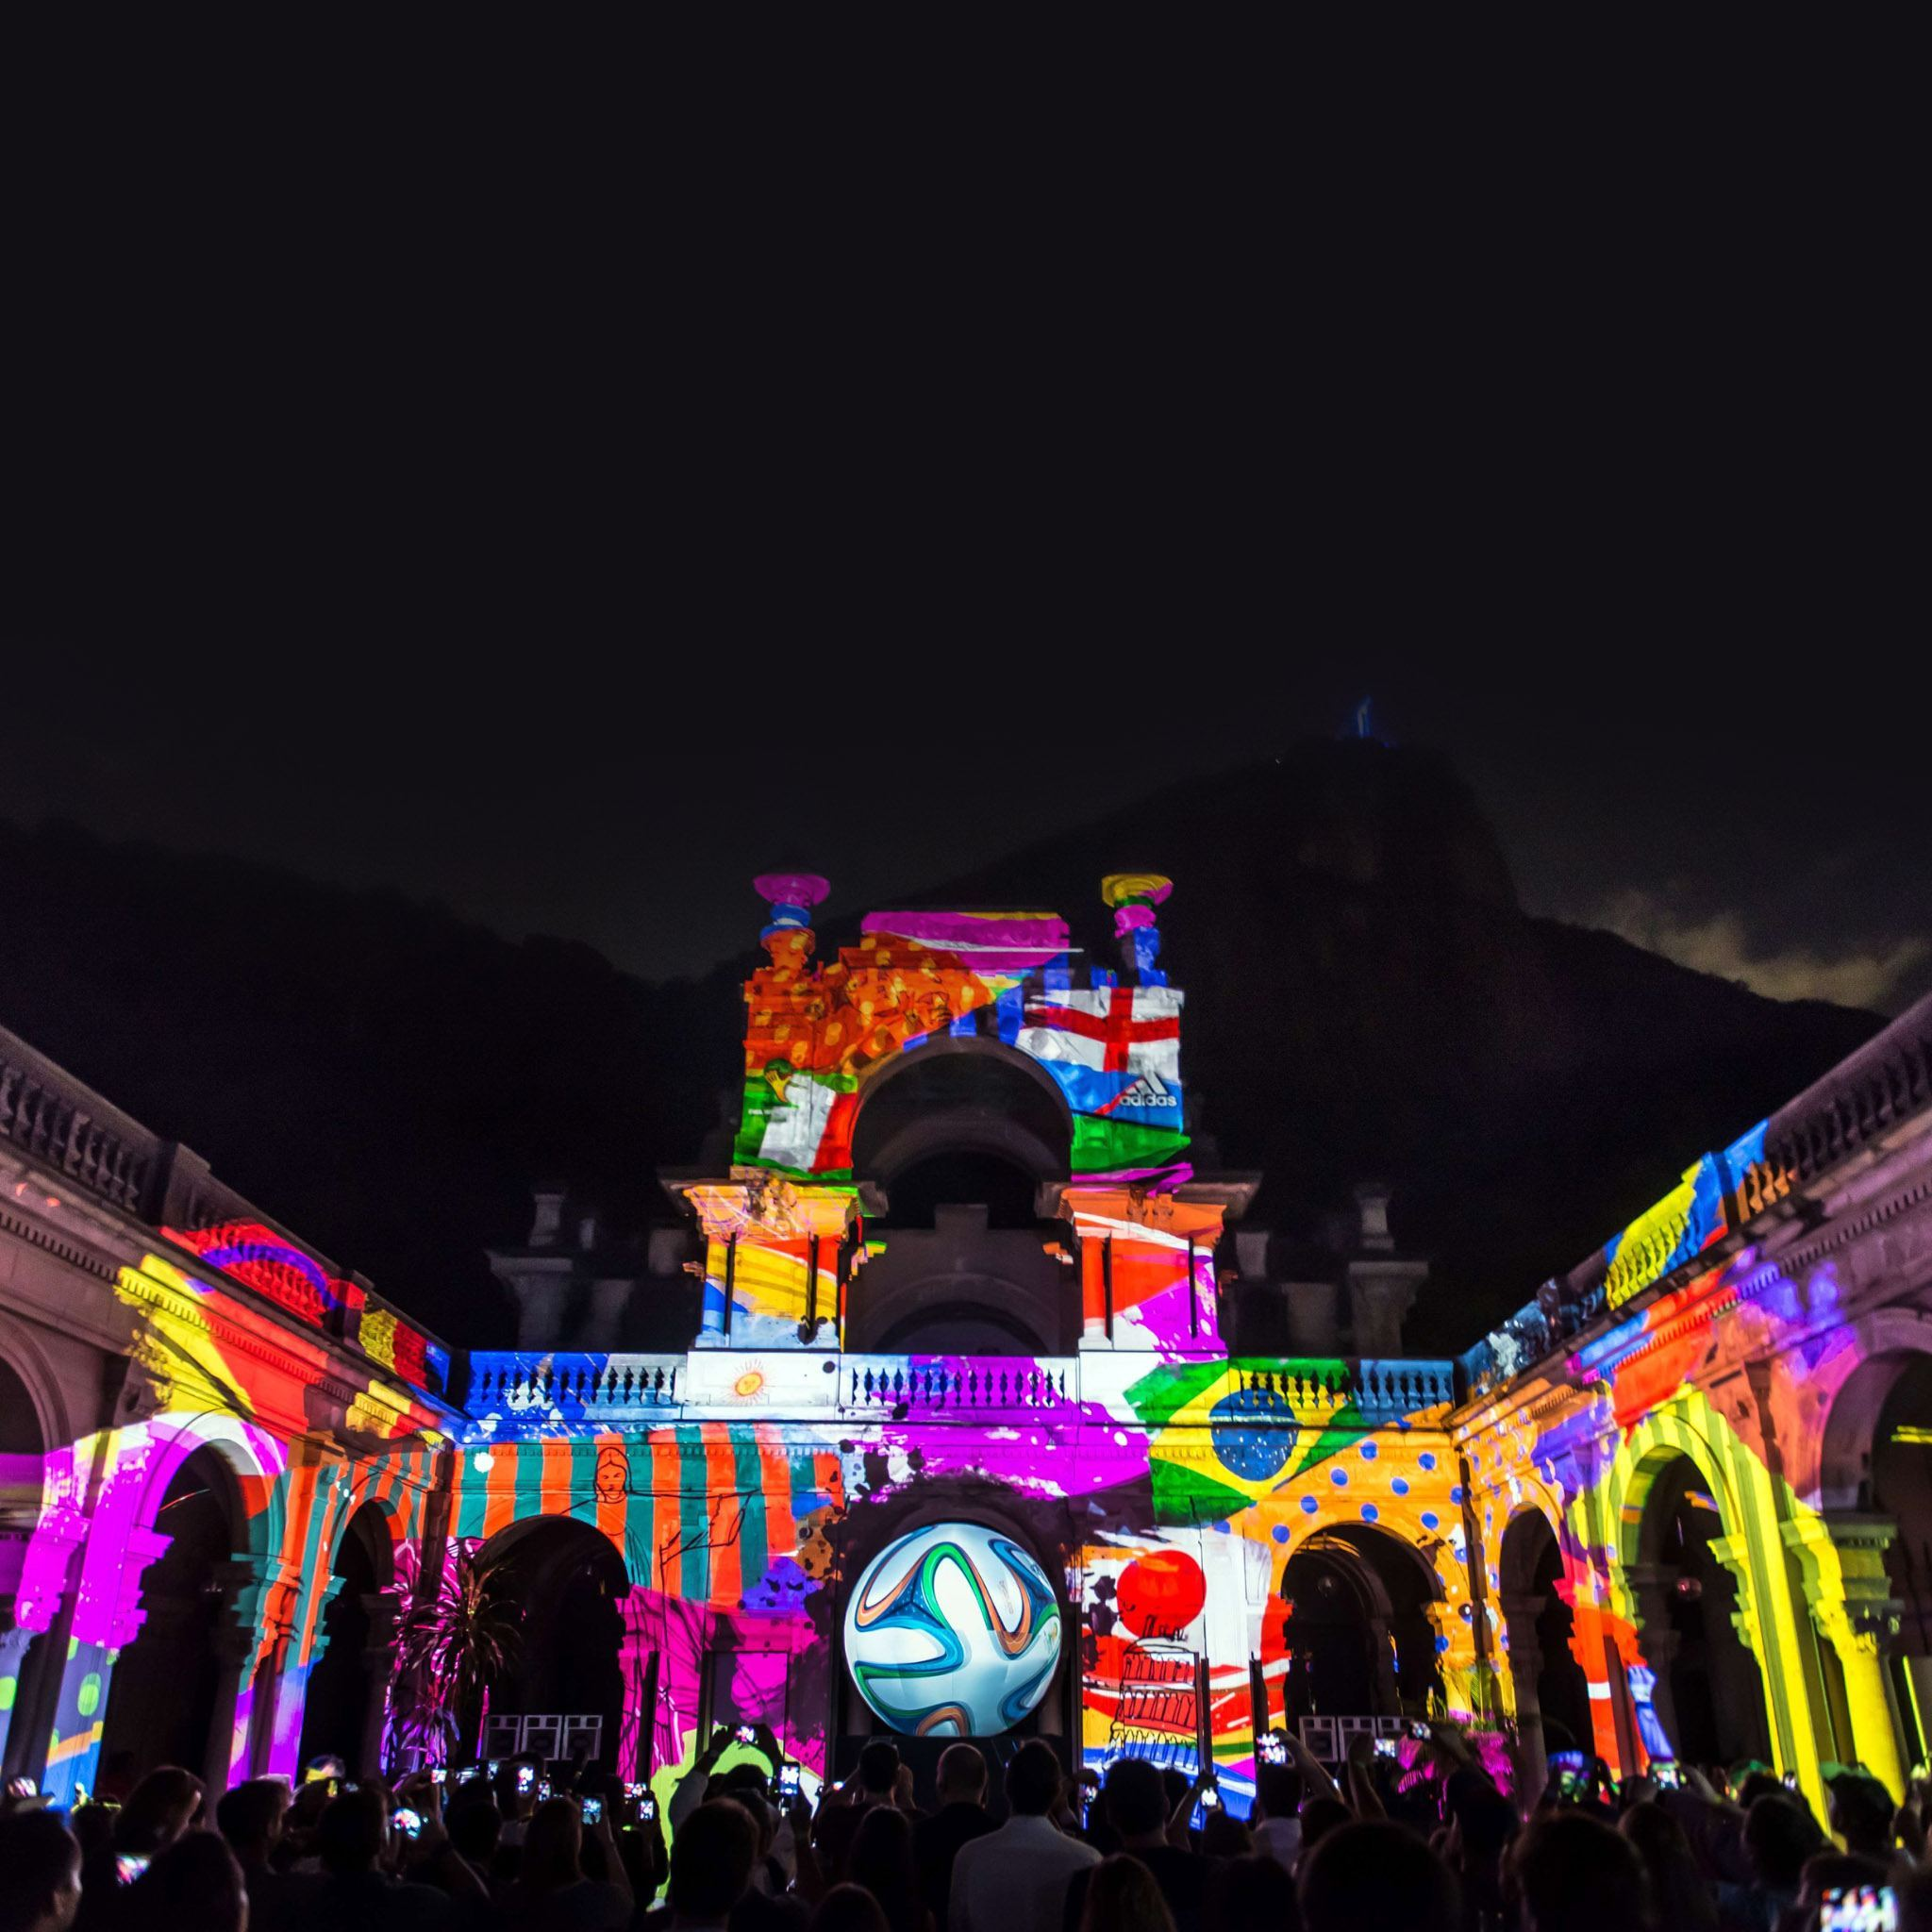 Brazuca --the official football for the Brazil 2014 FIFA World Cup-- is introduced as a projection during its launching in Rio de Janeiro, Brazil, on December 3, 2013. AFP PHOTO / YASUYOSHI CHIBAYASUYOSHI CHIBA/AFP/Getty Images ORG XMIT: